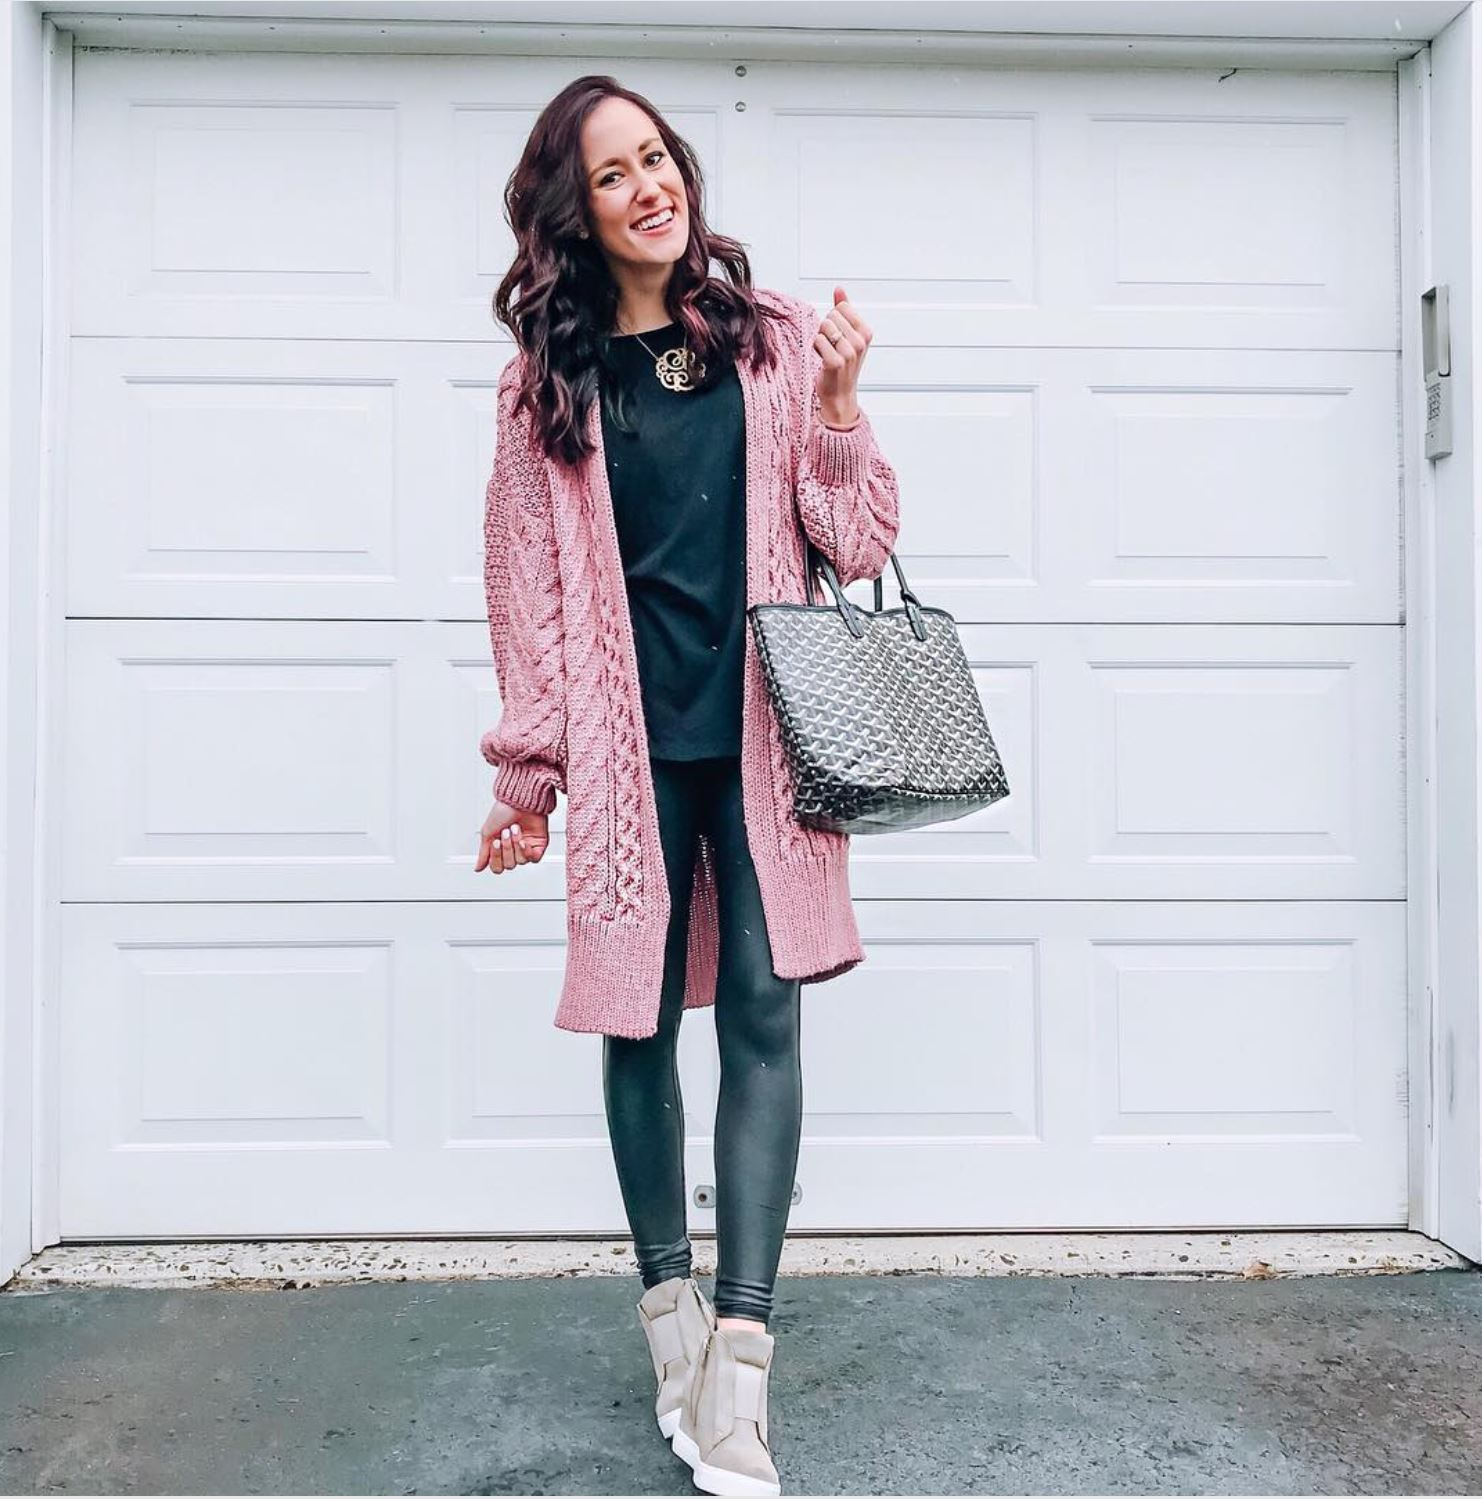 INSTAGRAM LATELY on Coming Up Roses - Topshop cardigan, spanx leather leggings